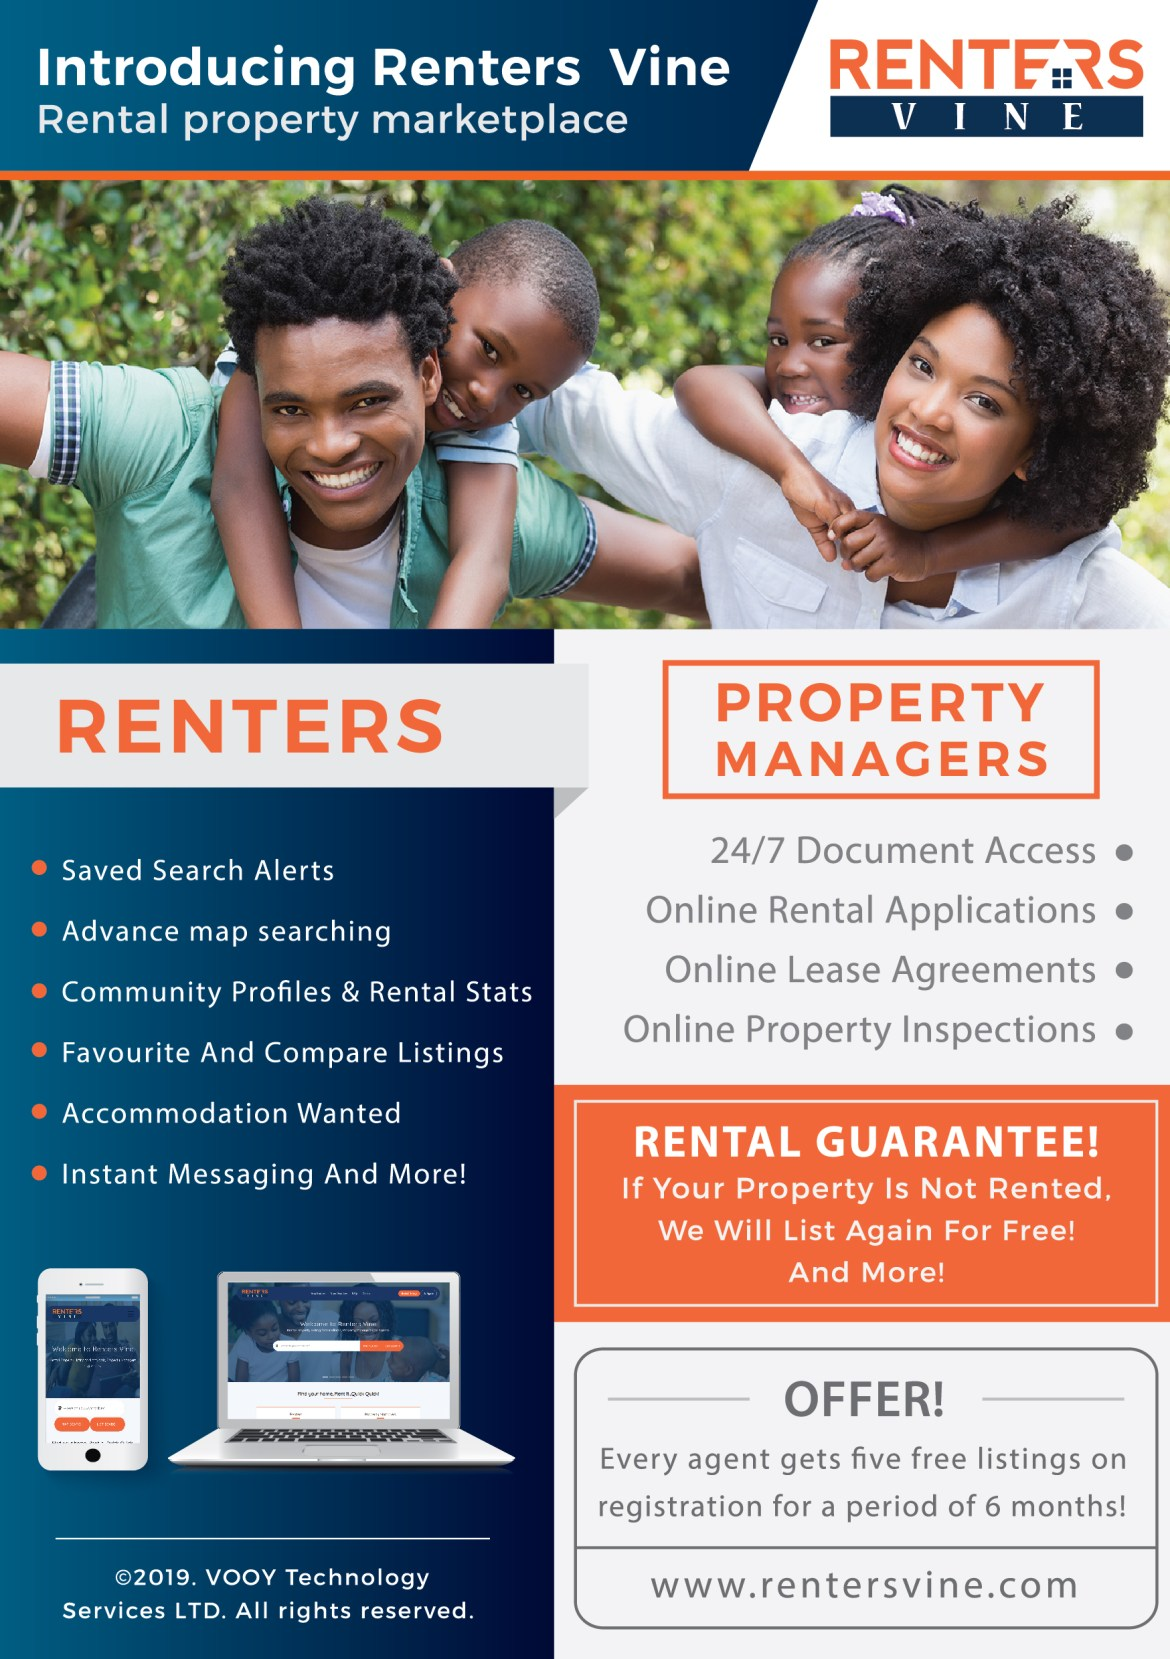 nigeria property listing platform for Landlords, Property Managers, Agents, and Renters